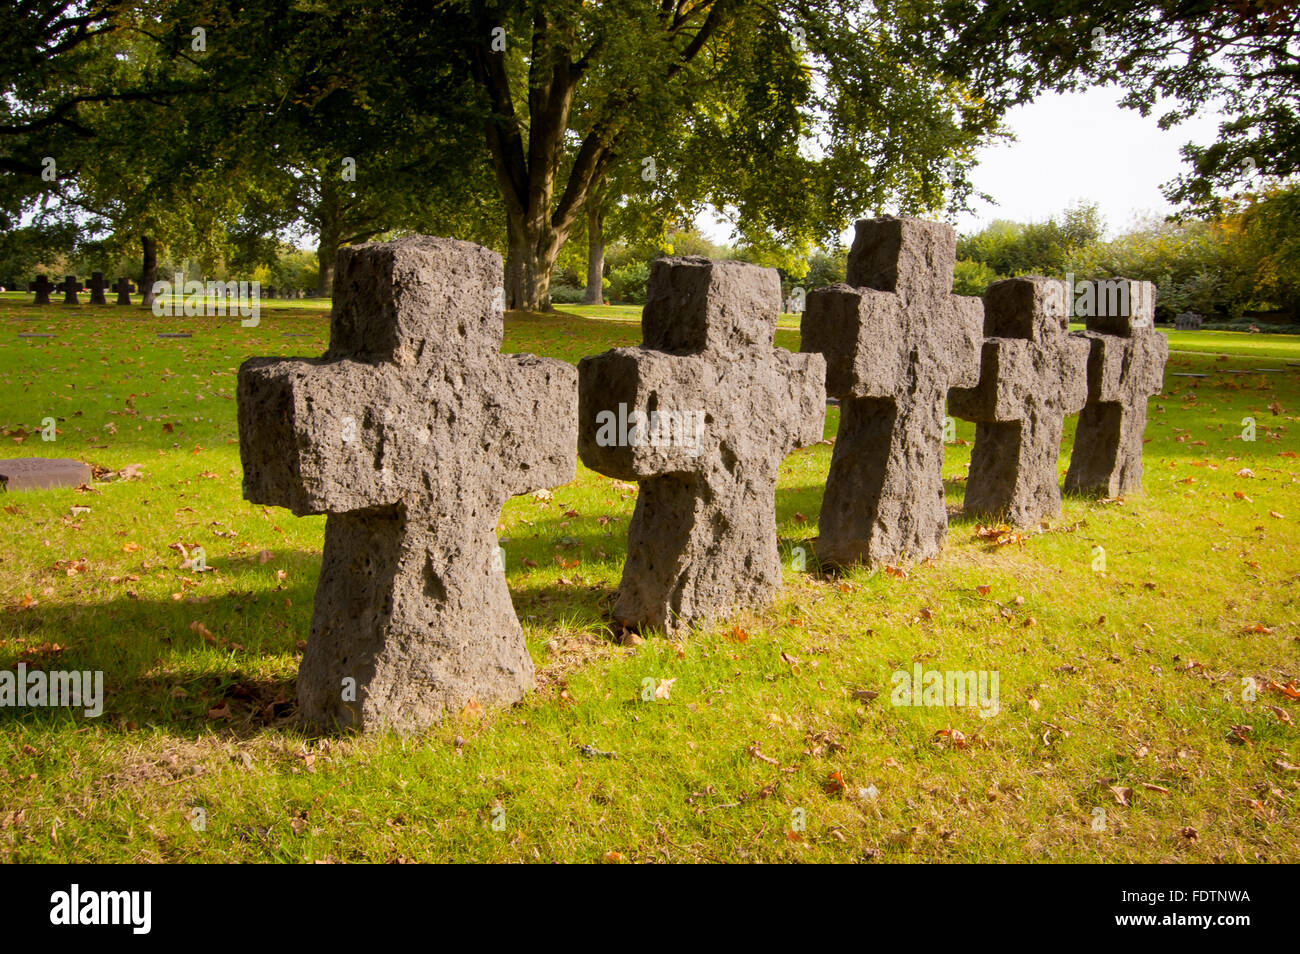 Tombstones and stone crosses at La Cambe German Second World War military cemetery, Lower Normandy, France - Stock Image